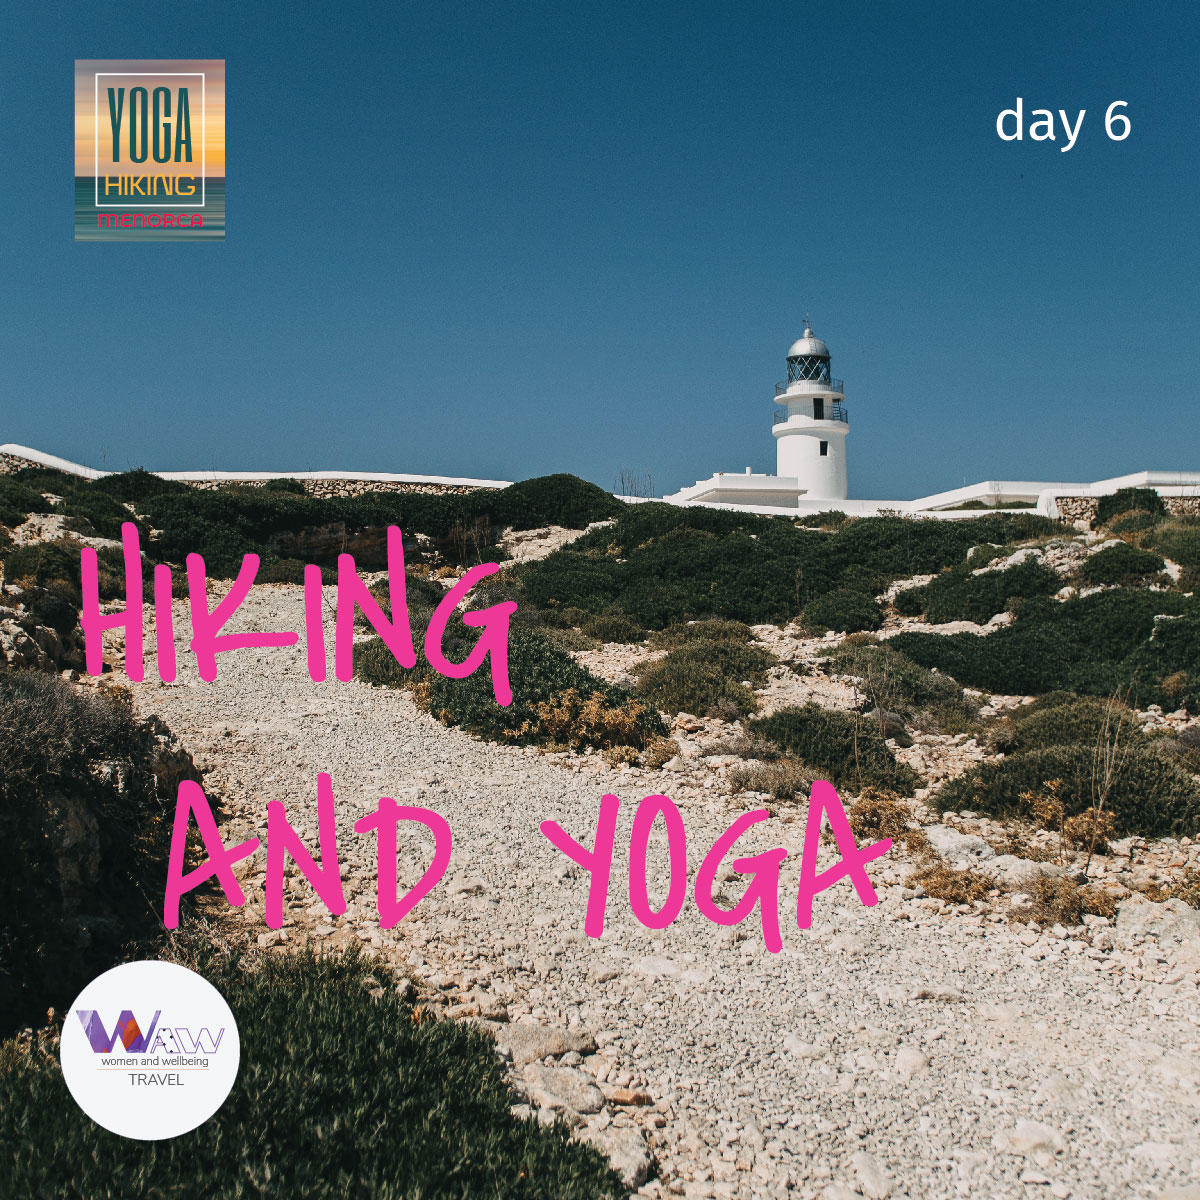 Day 6      Walking and yoga